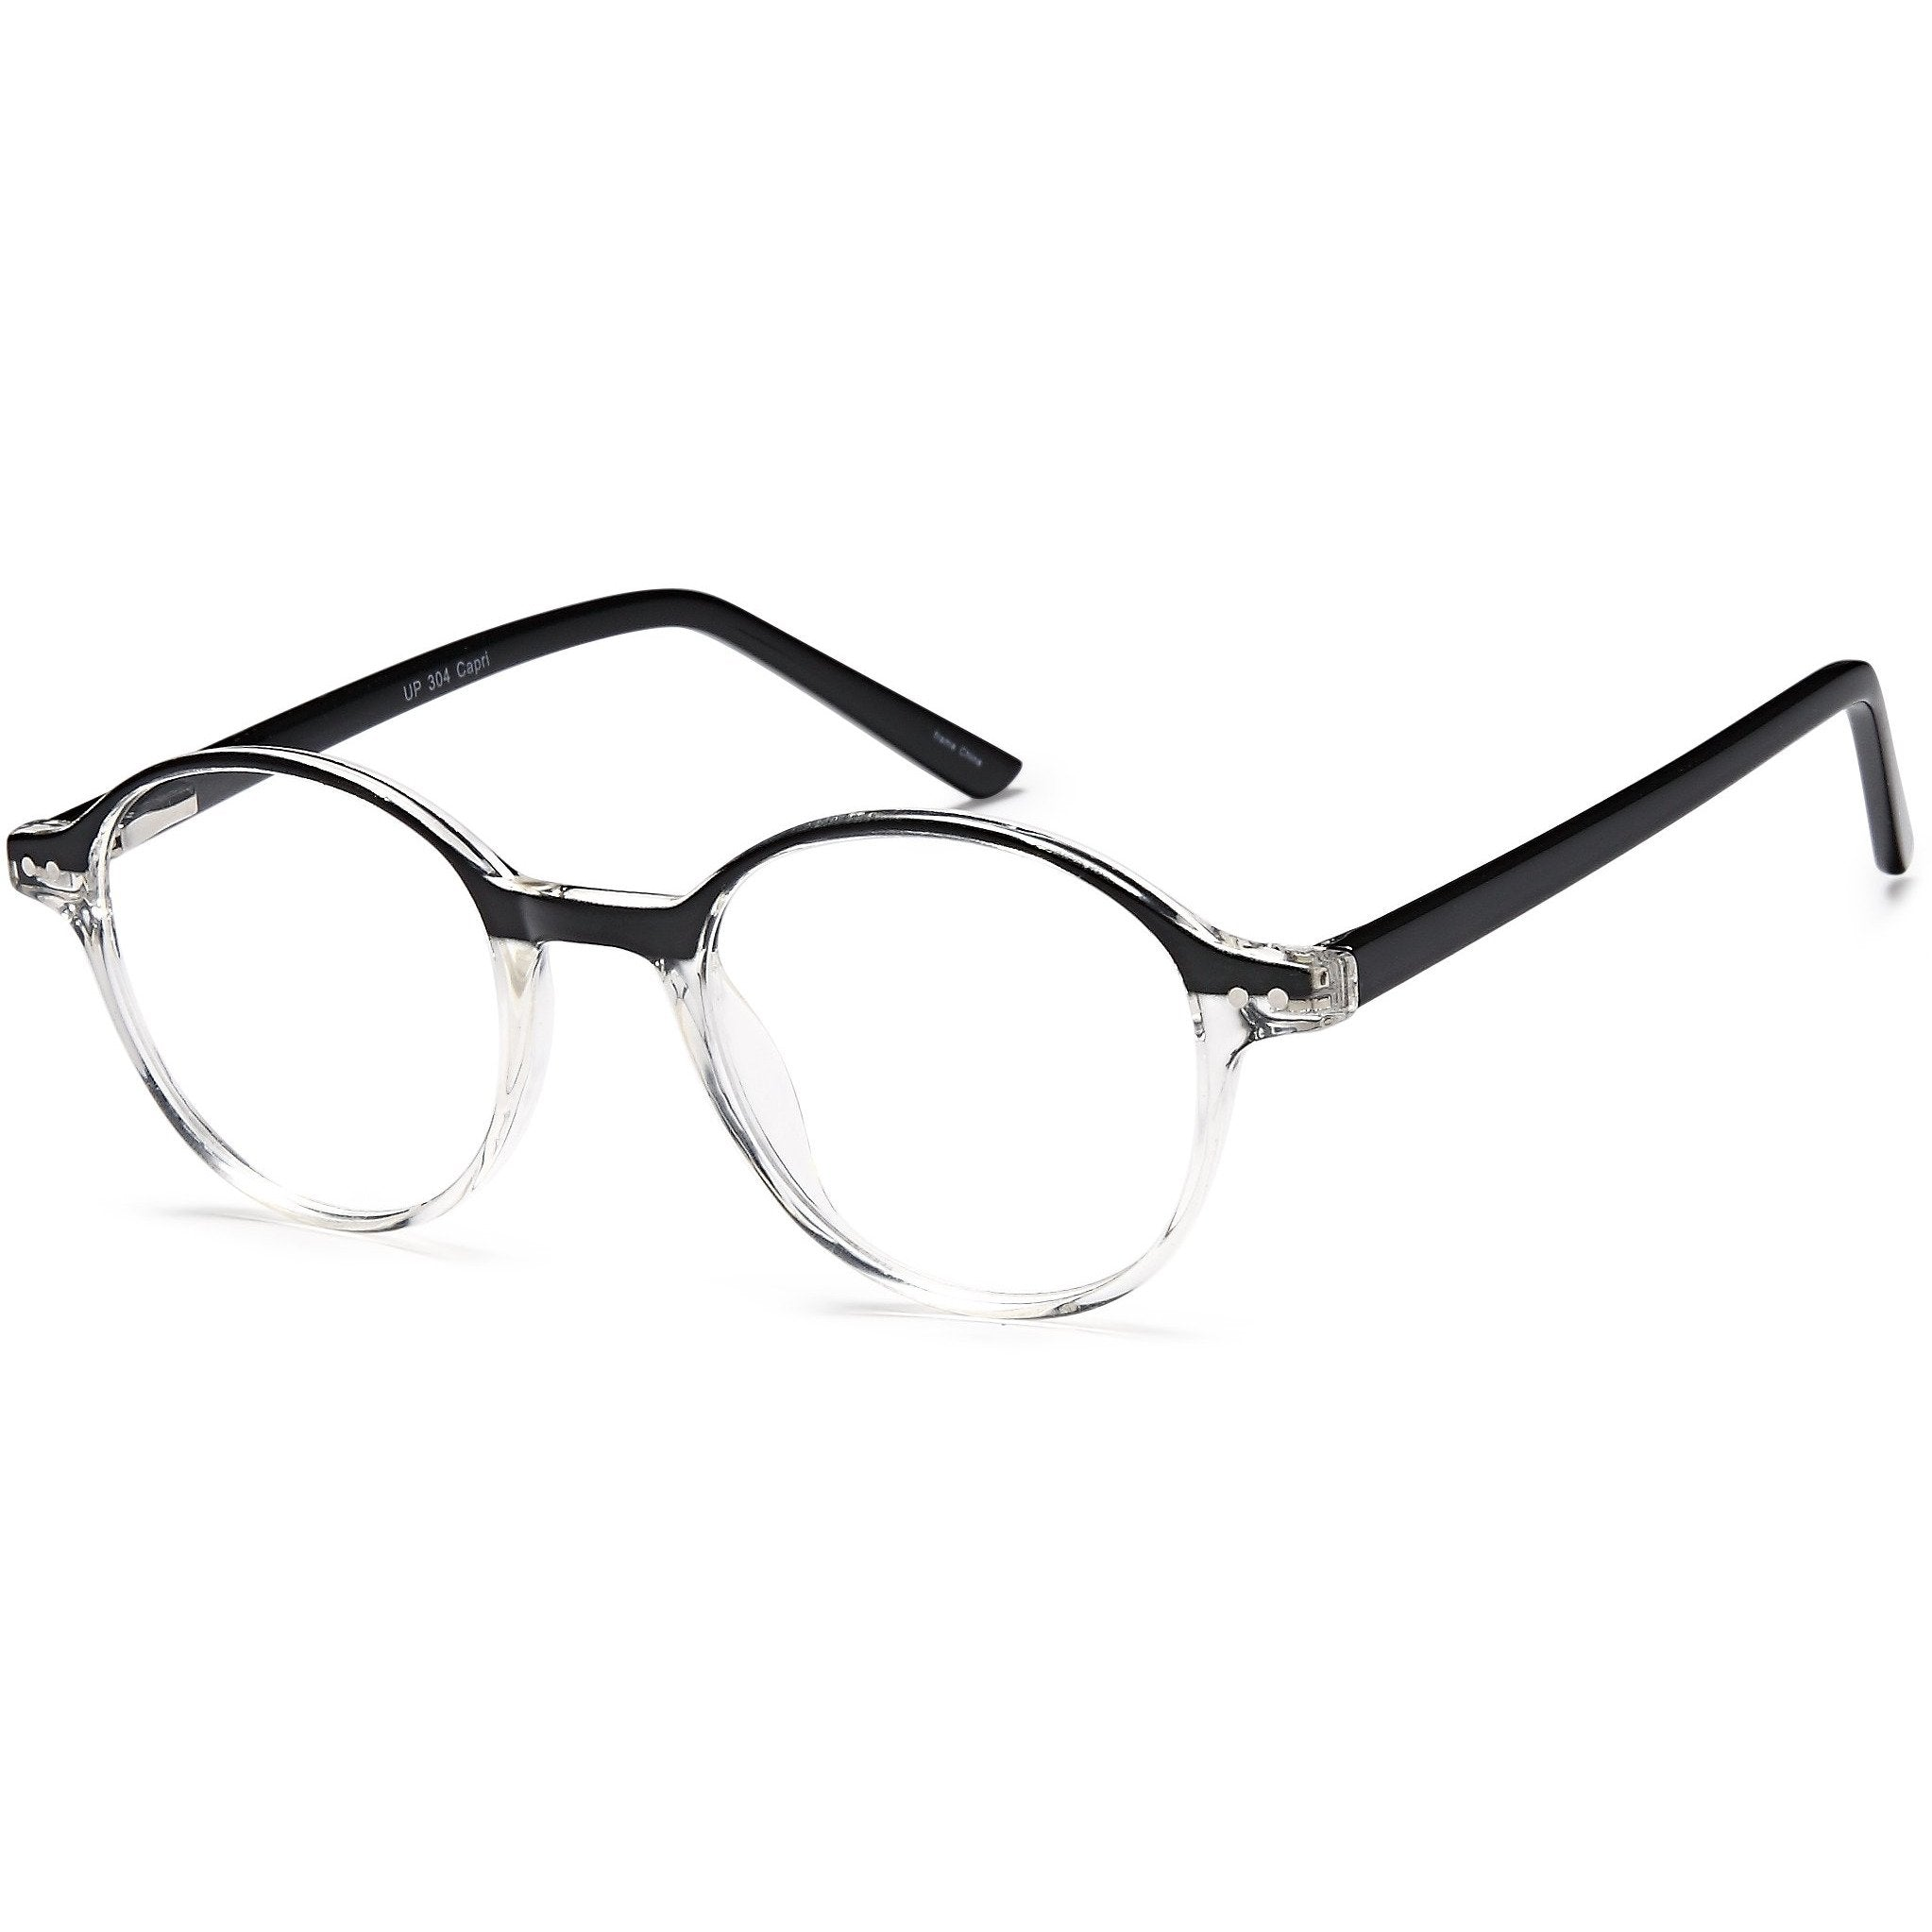 2U Prescription Glasses UP 304 Optical Eyeglasses Frames